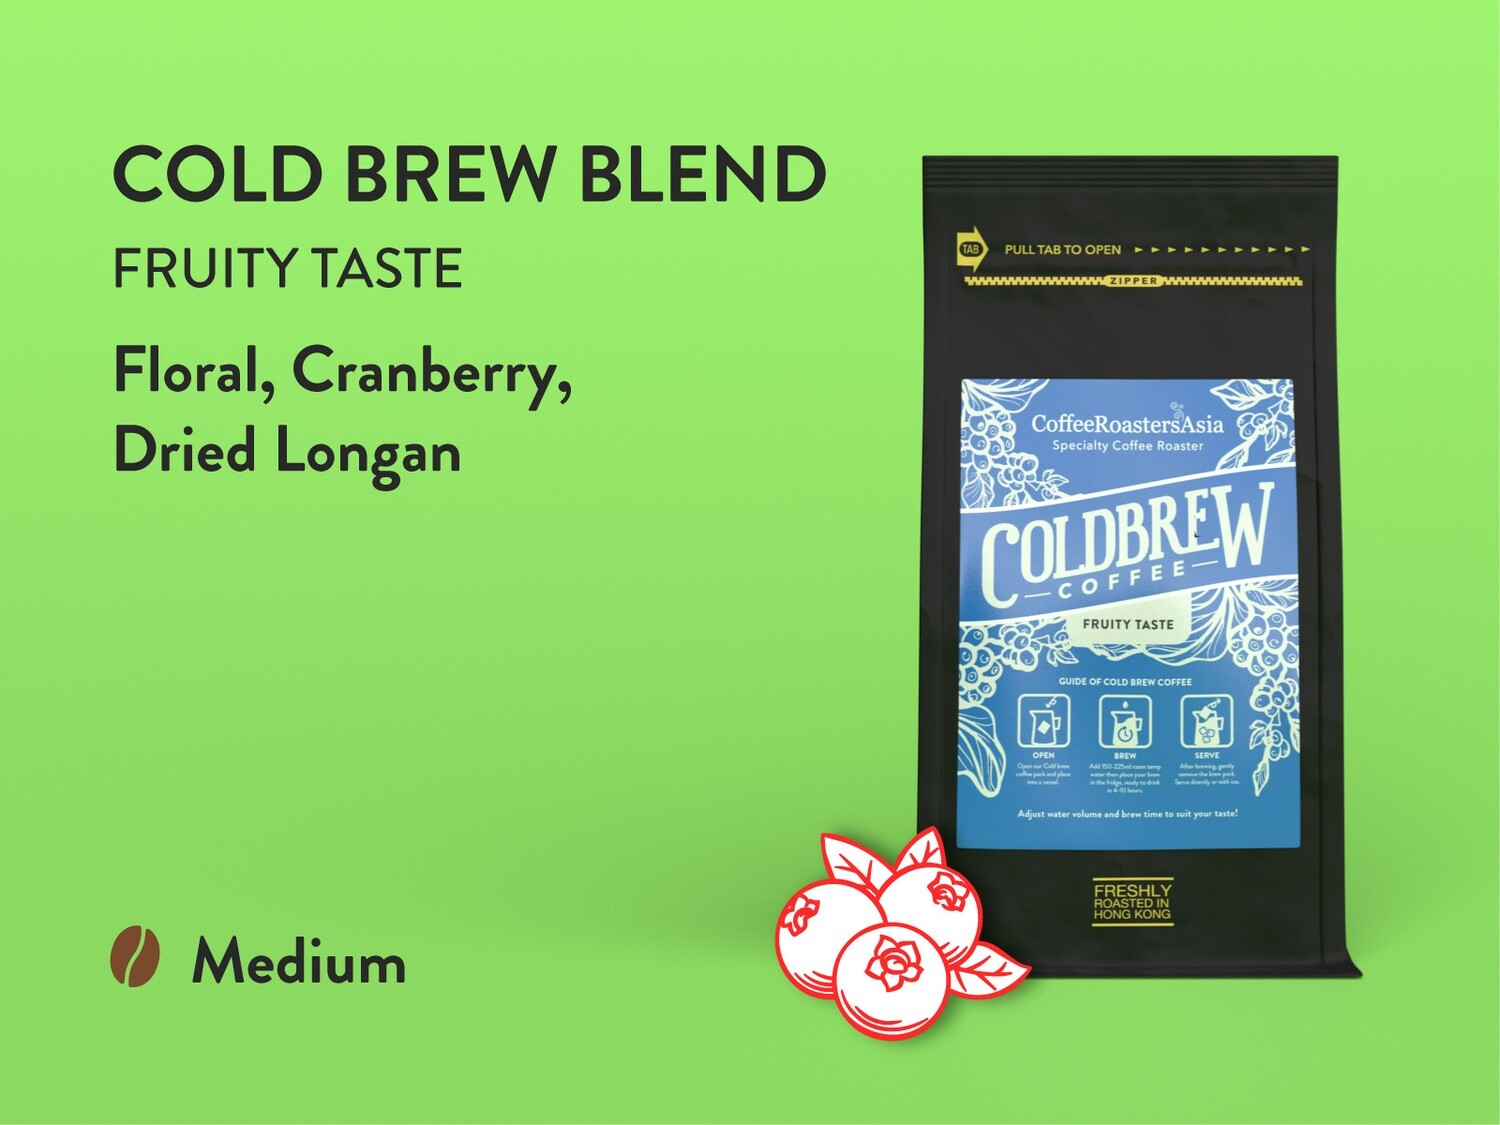 Cold Brew Blend Coffee - Medium Roast Fruity Taste